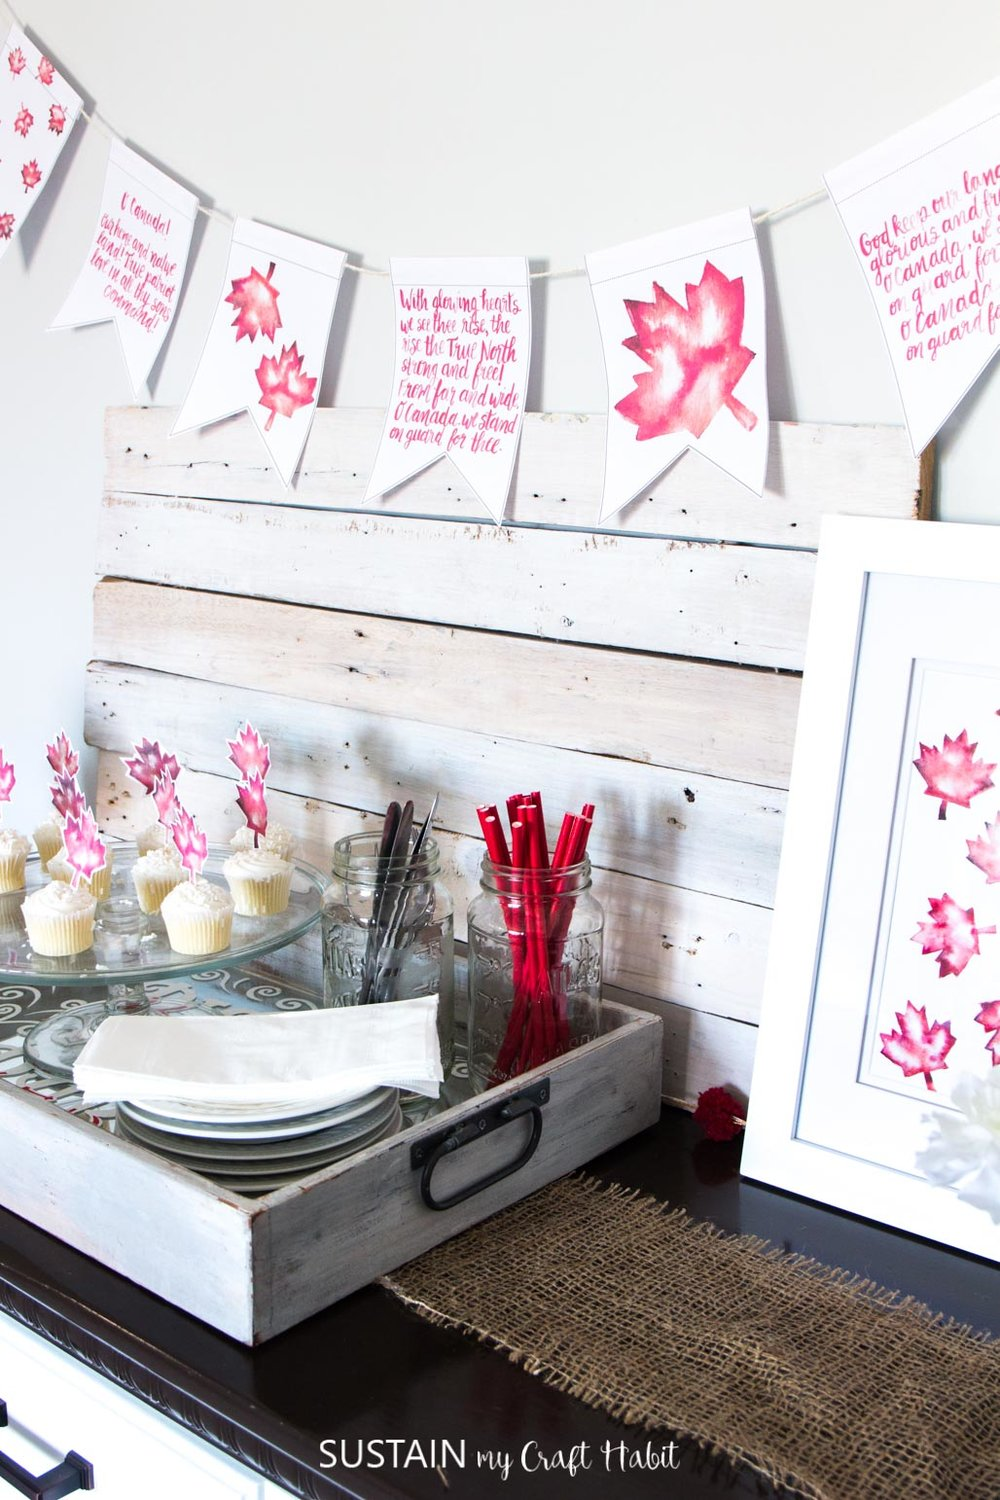 DIY Canada Day decorating ideas including free printable art and hand lettered banner.